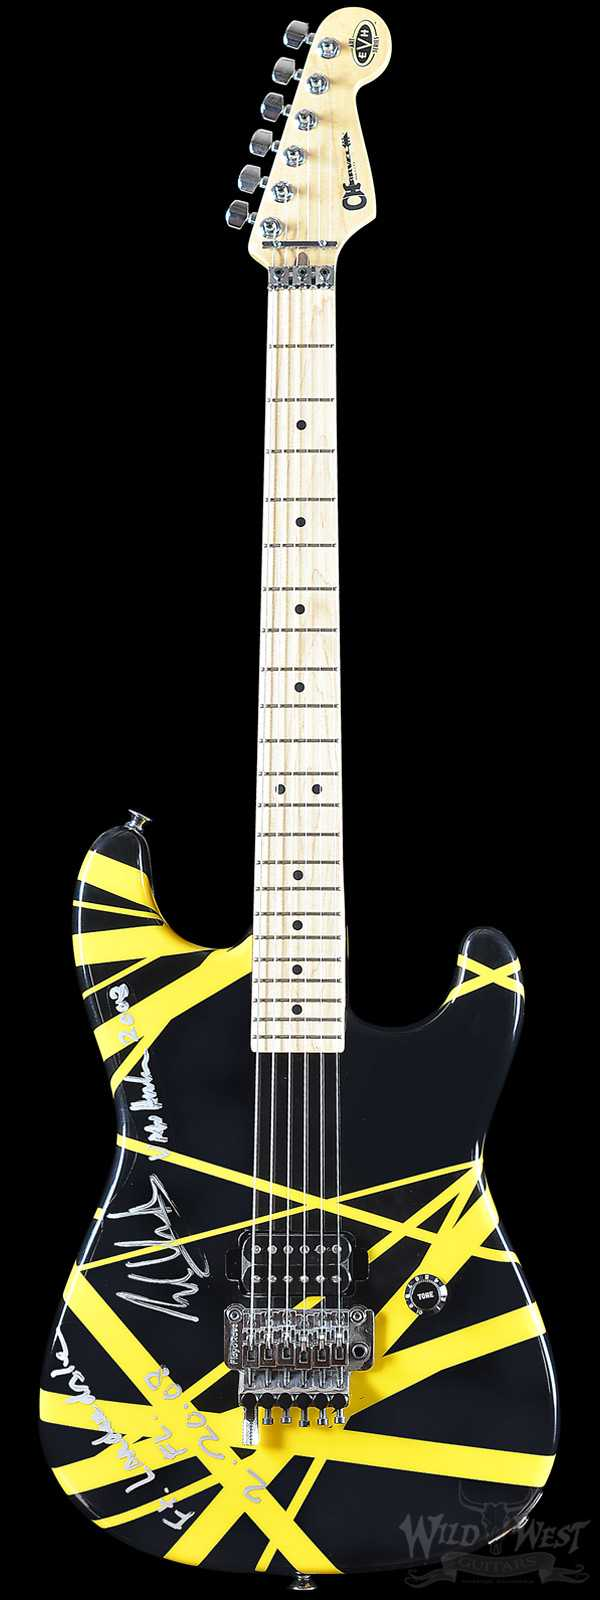 2008 Charvel EVH Art Series Guitar Black & Yellow Eddie Van Halen Hand Painted & Signed